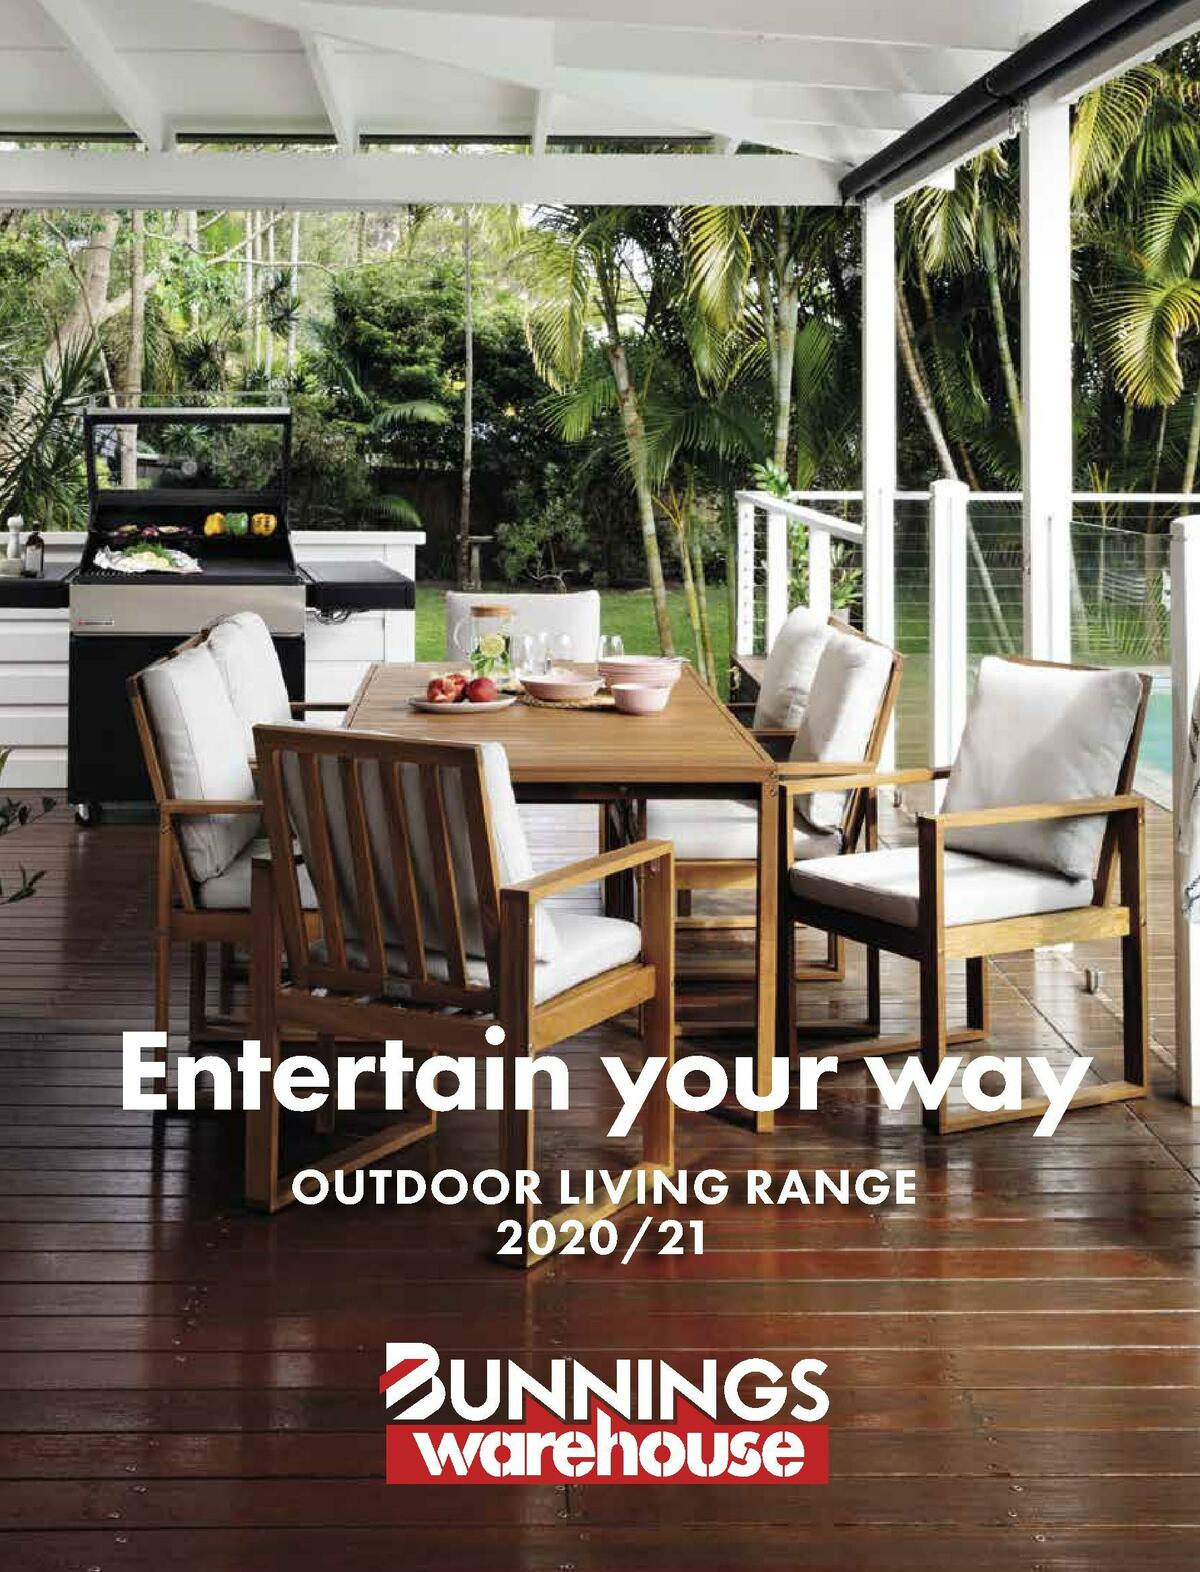 Bunnings Warehouse Outdoor Living Range Book Catalogues from December 1